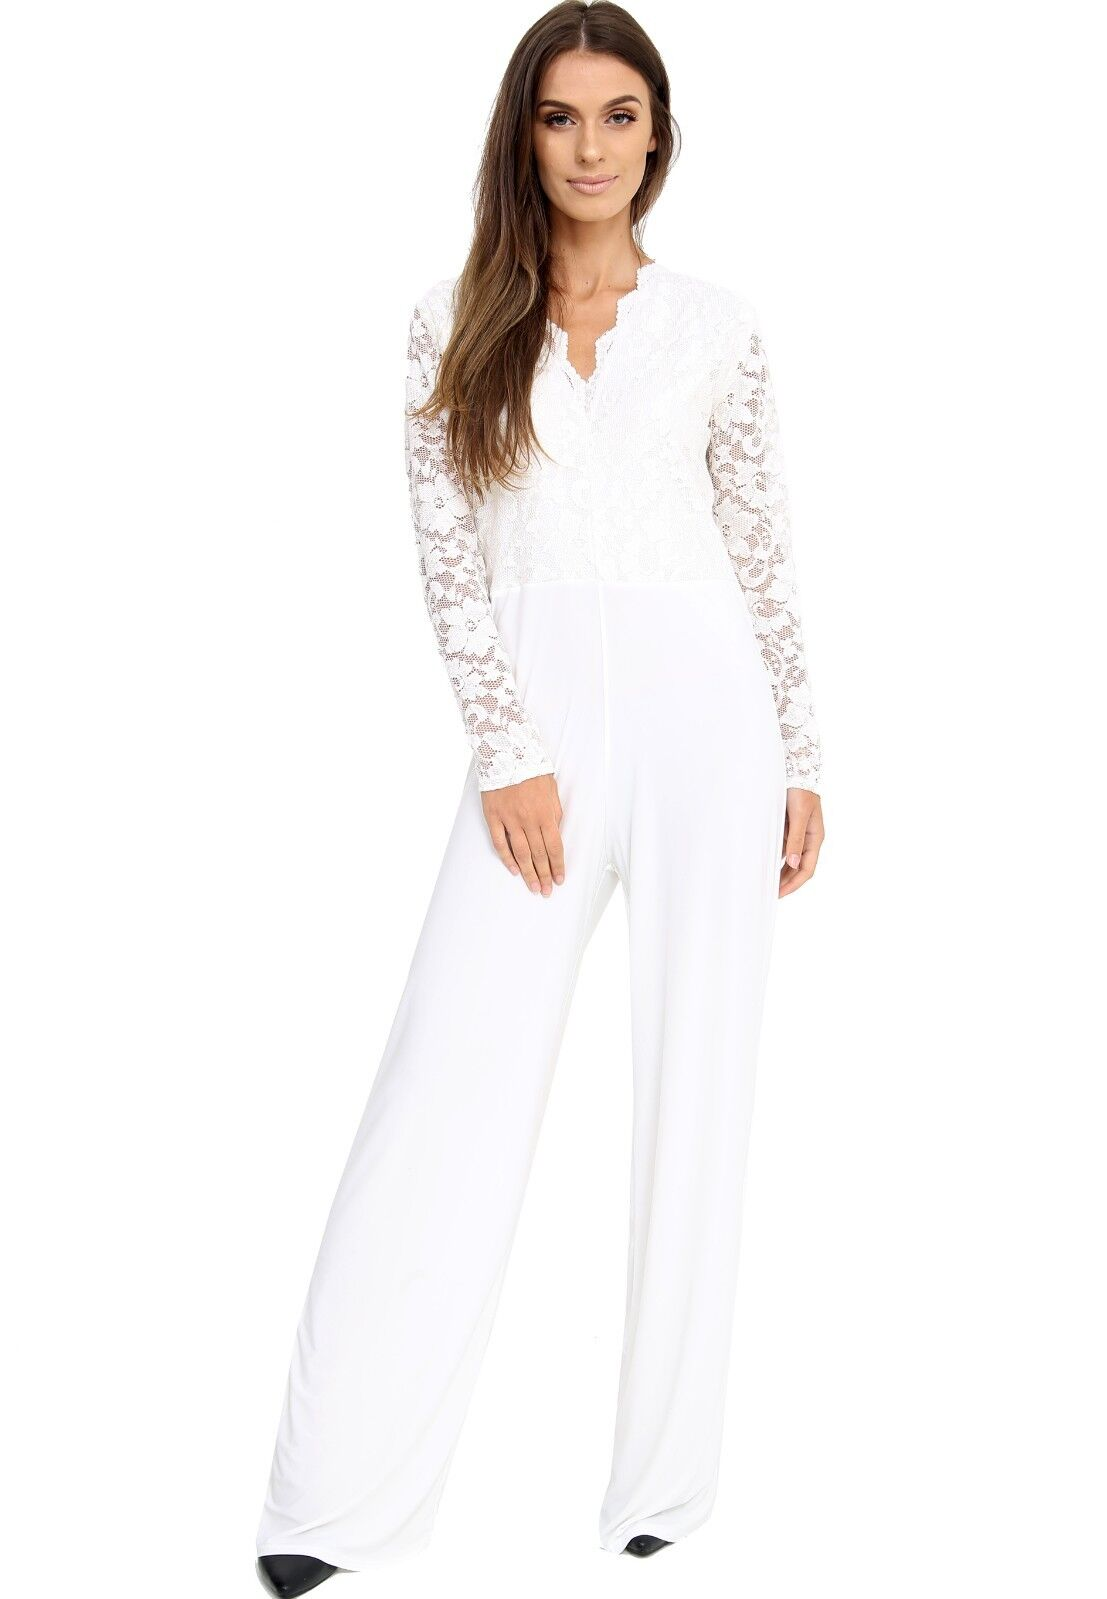 27ab89b44a87 White Jumpsuit Plus Size Uk | Huston Fislar Photography